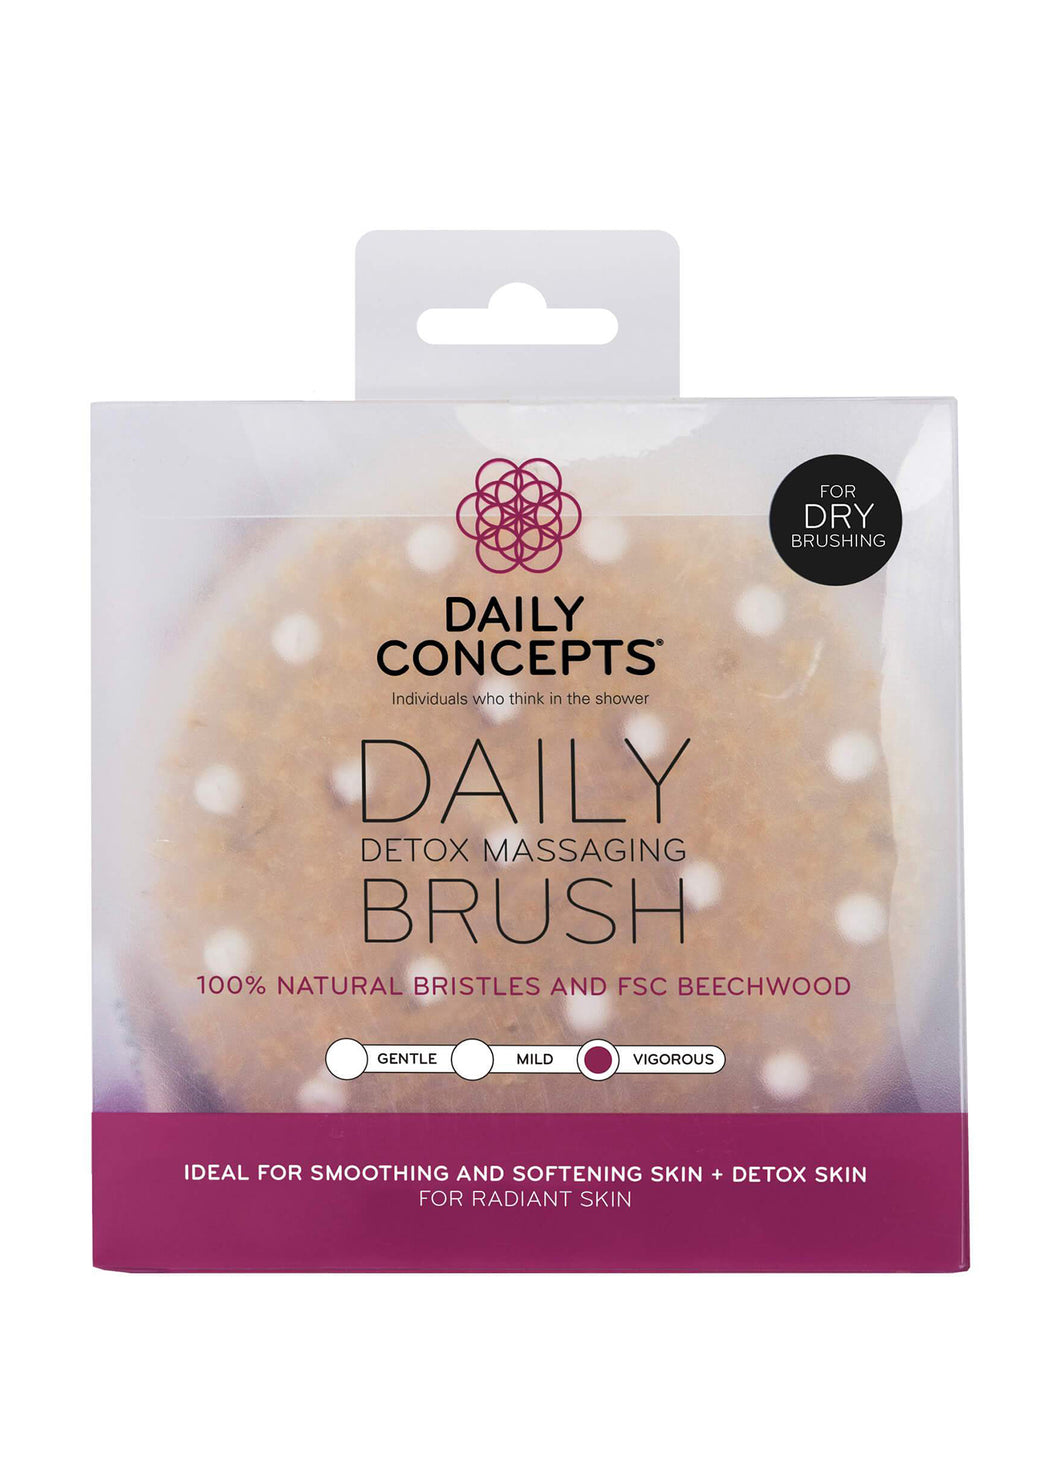 Daily Concepts Detox Massage Brush